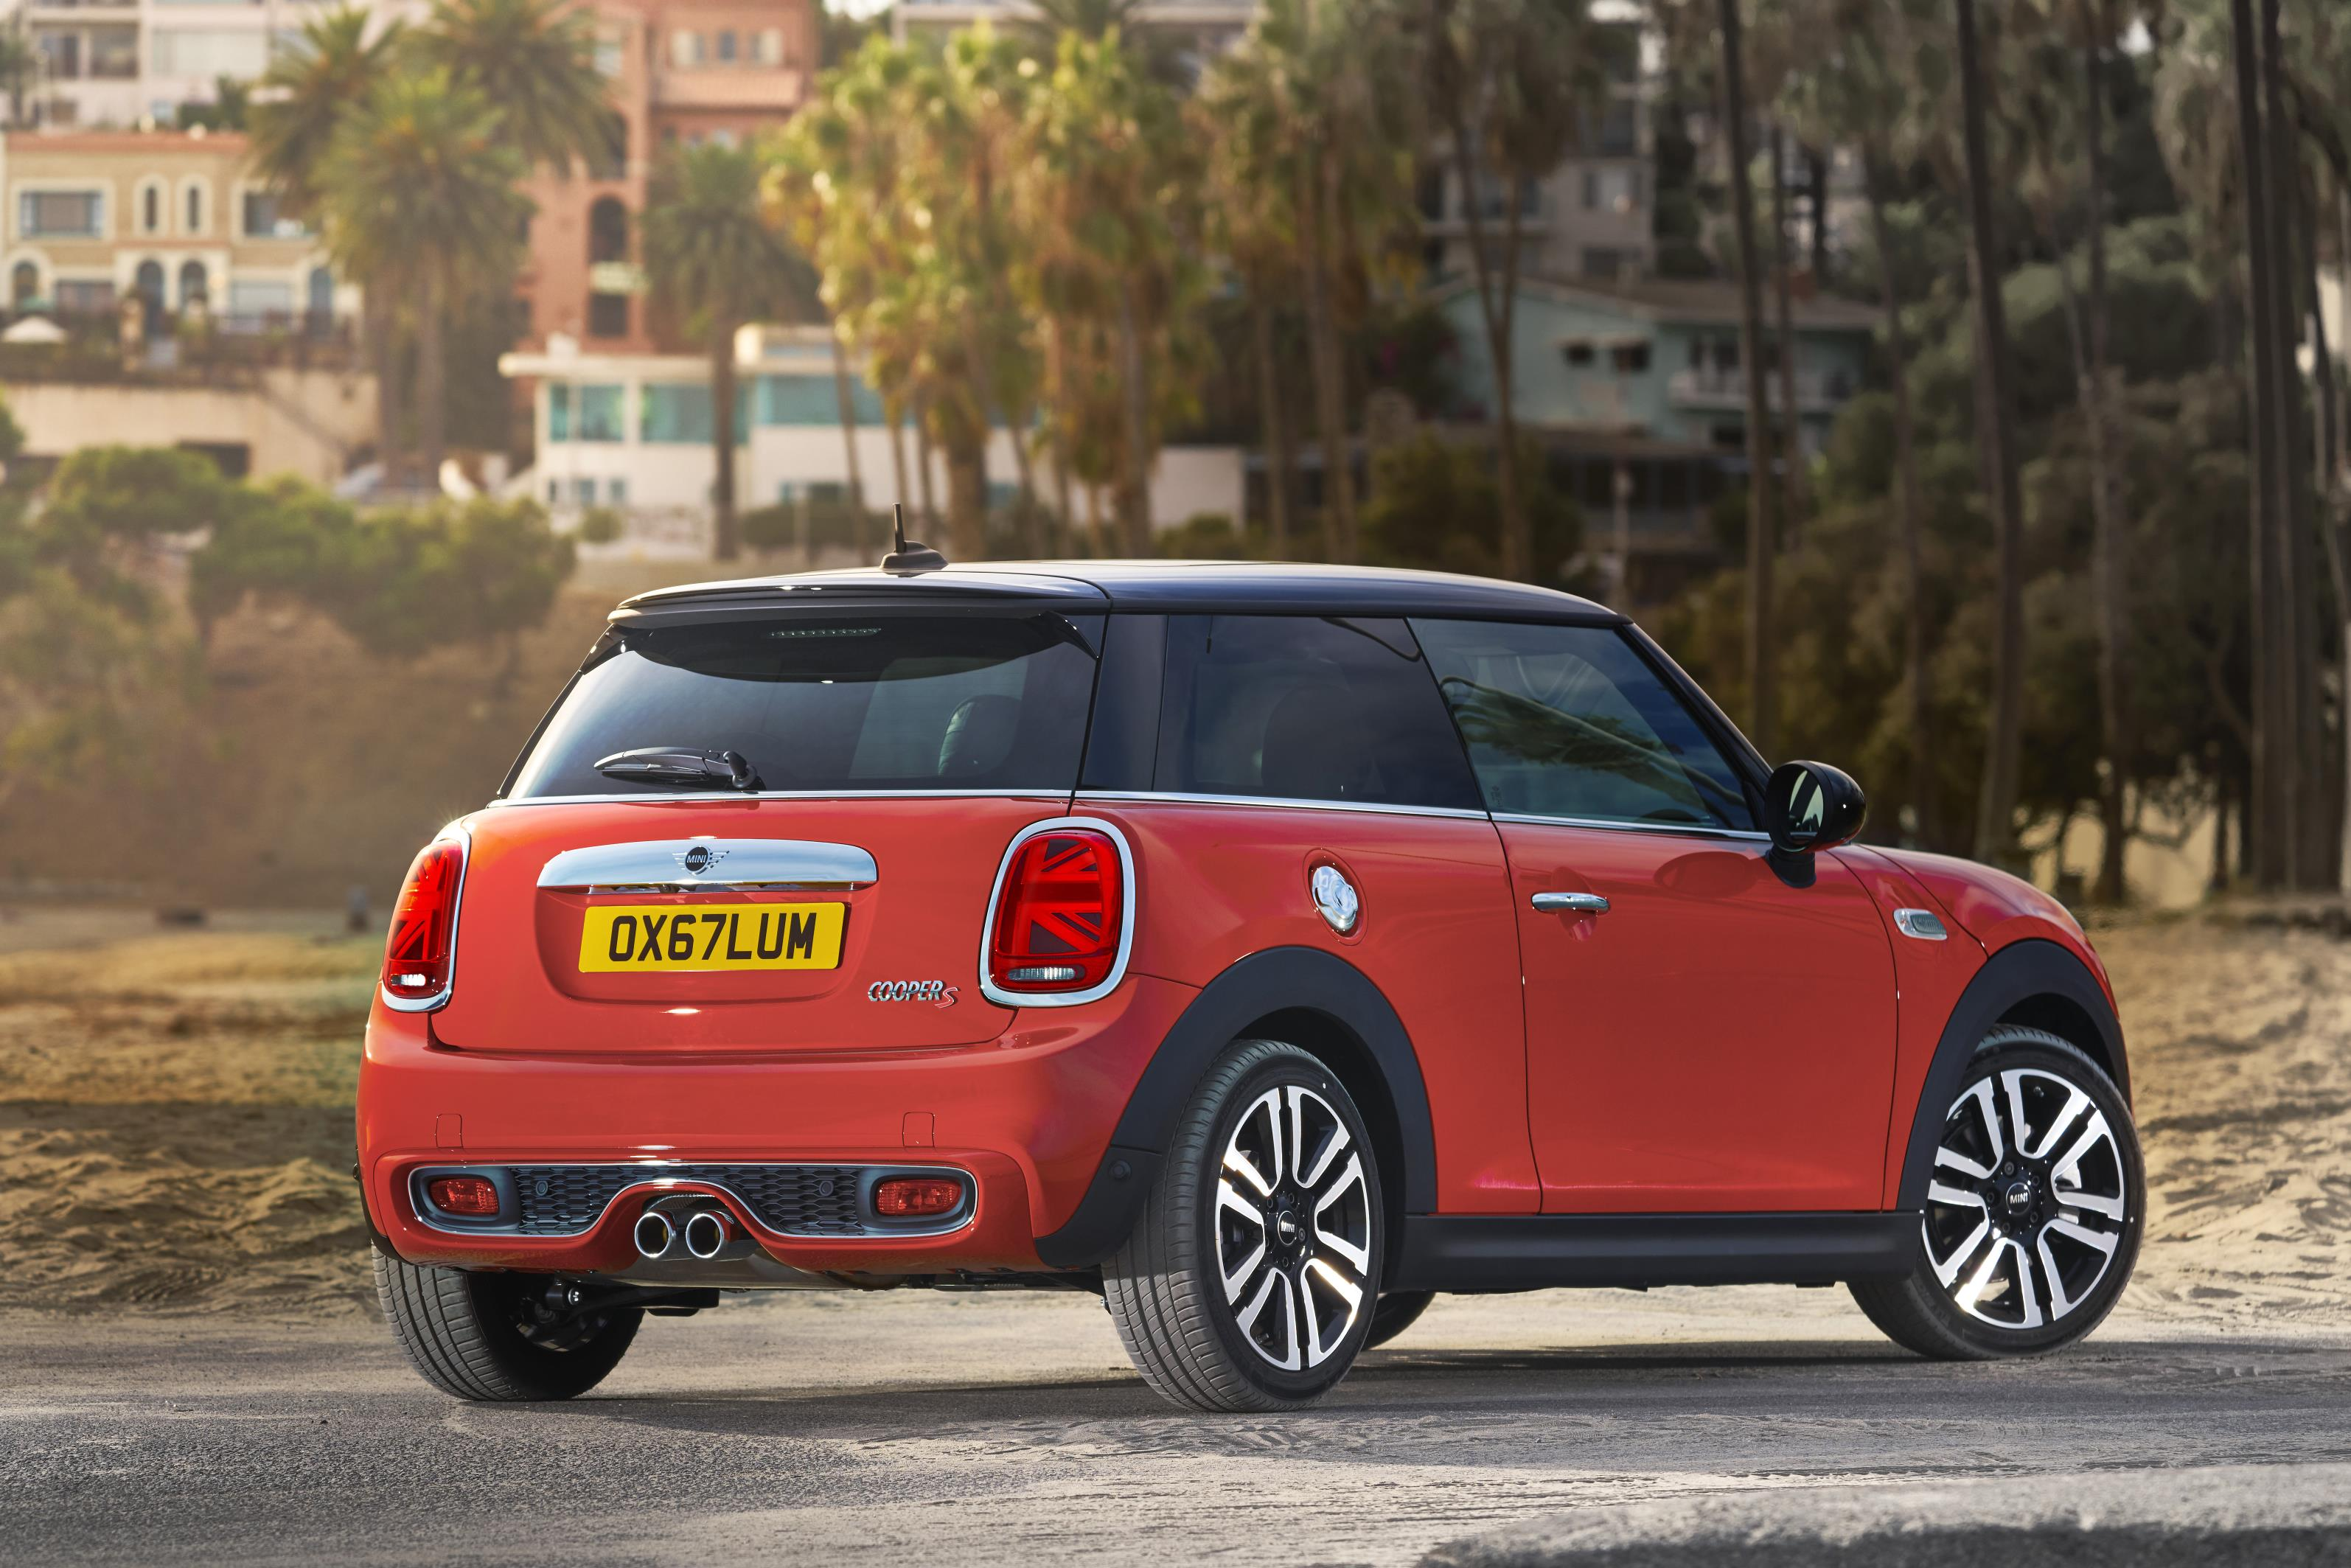 door mini cooper rails img ixlib hire sydney car next rent